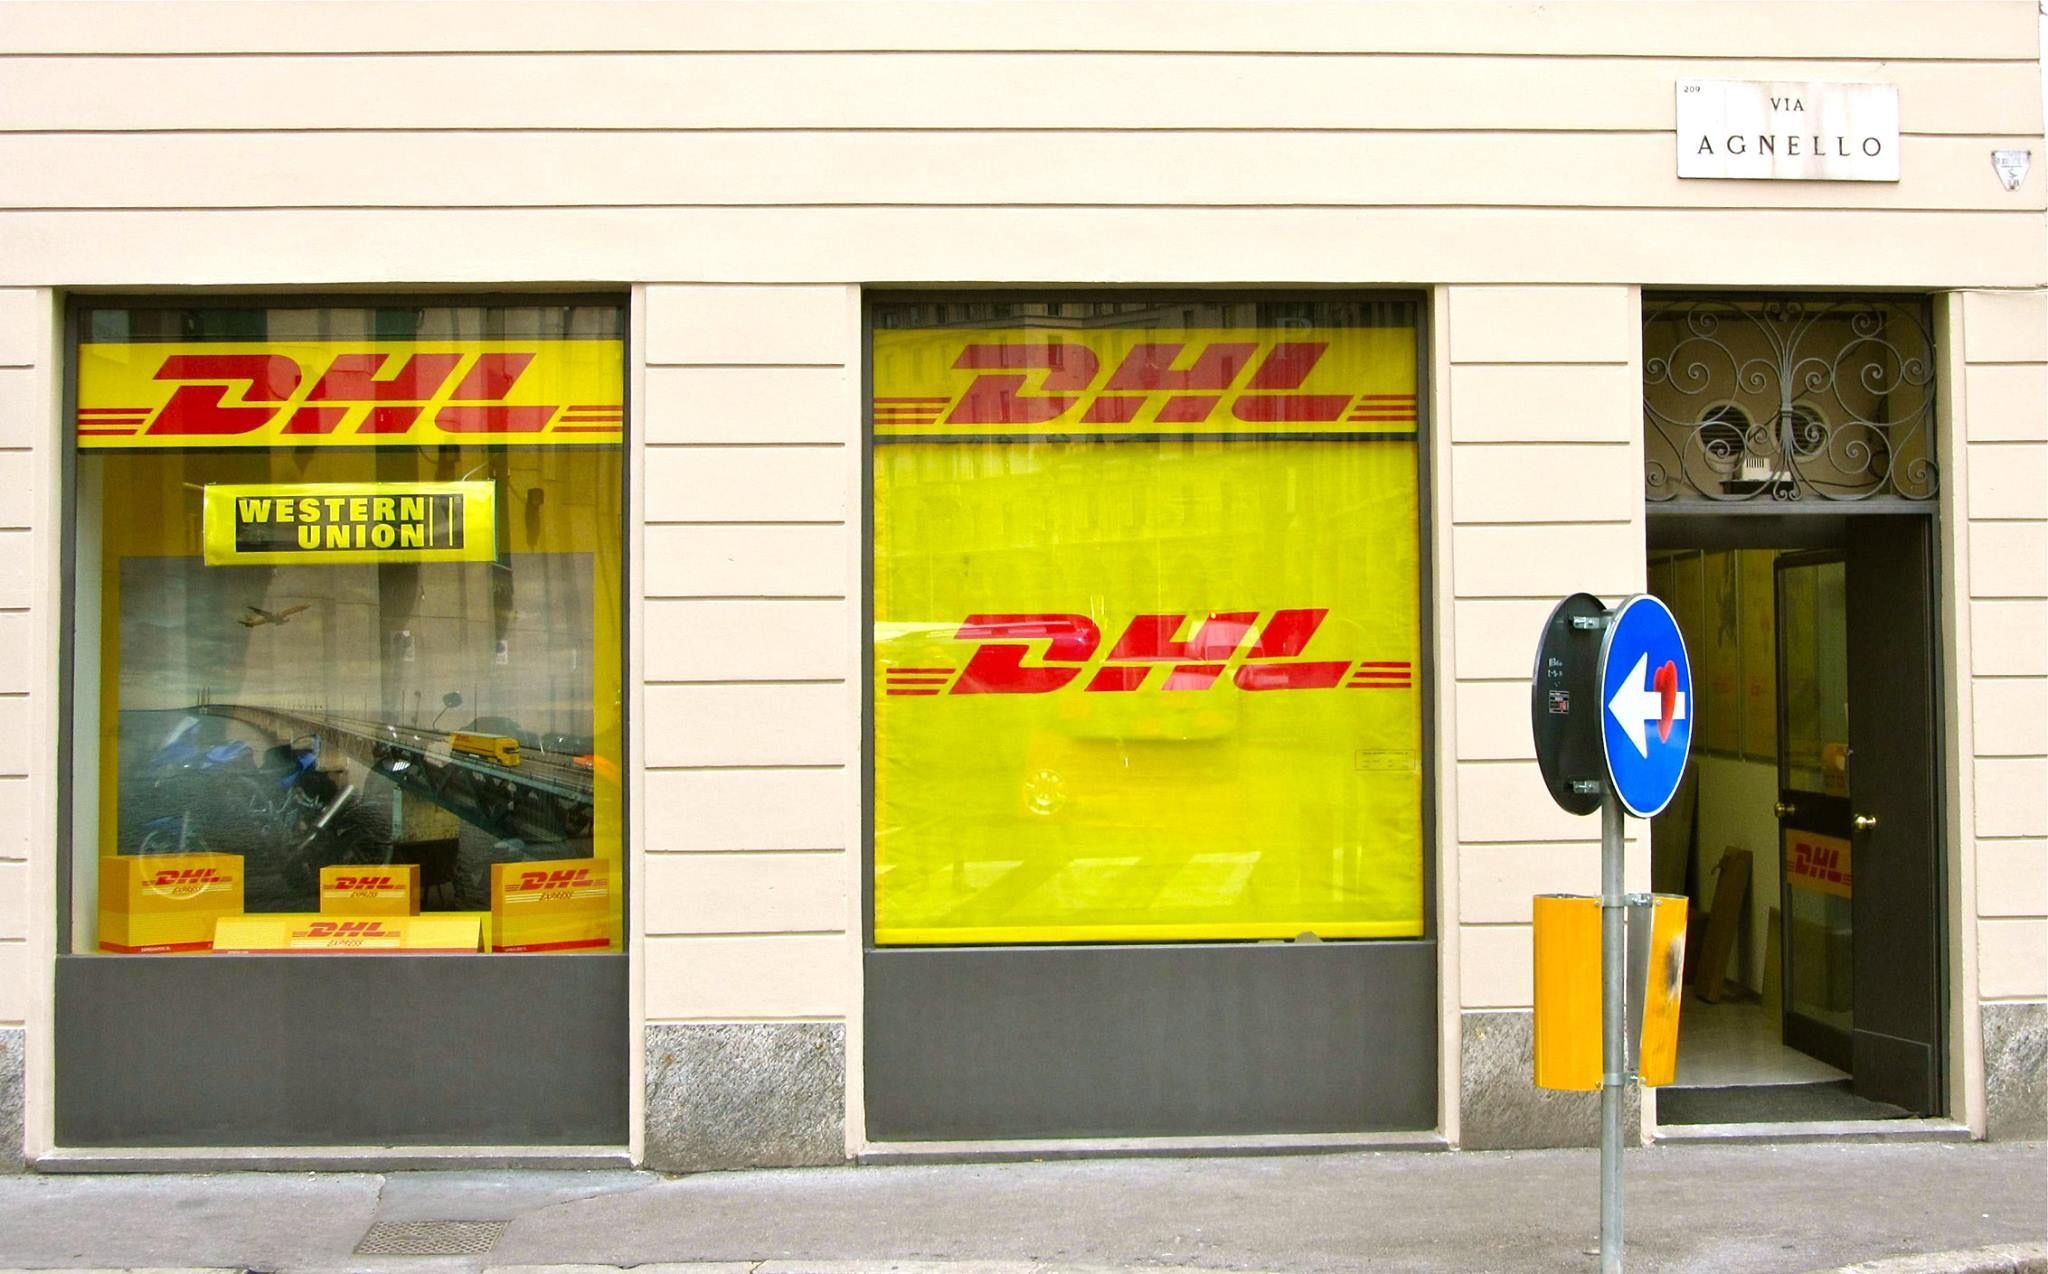 Insegne Negozi Insegne Luminose Negozi Insegne Negozi Dhl Servicepoint